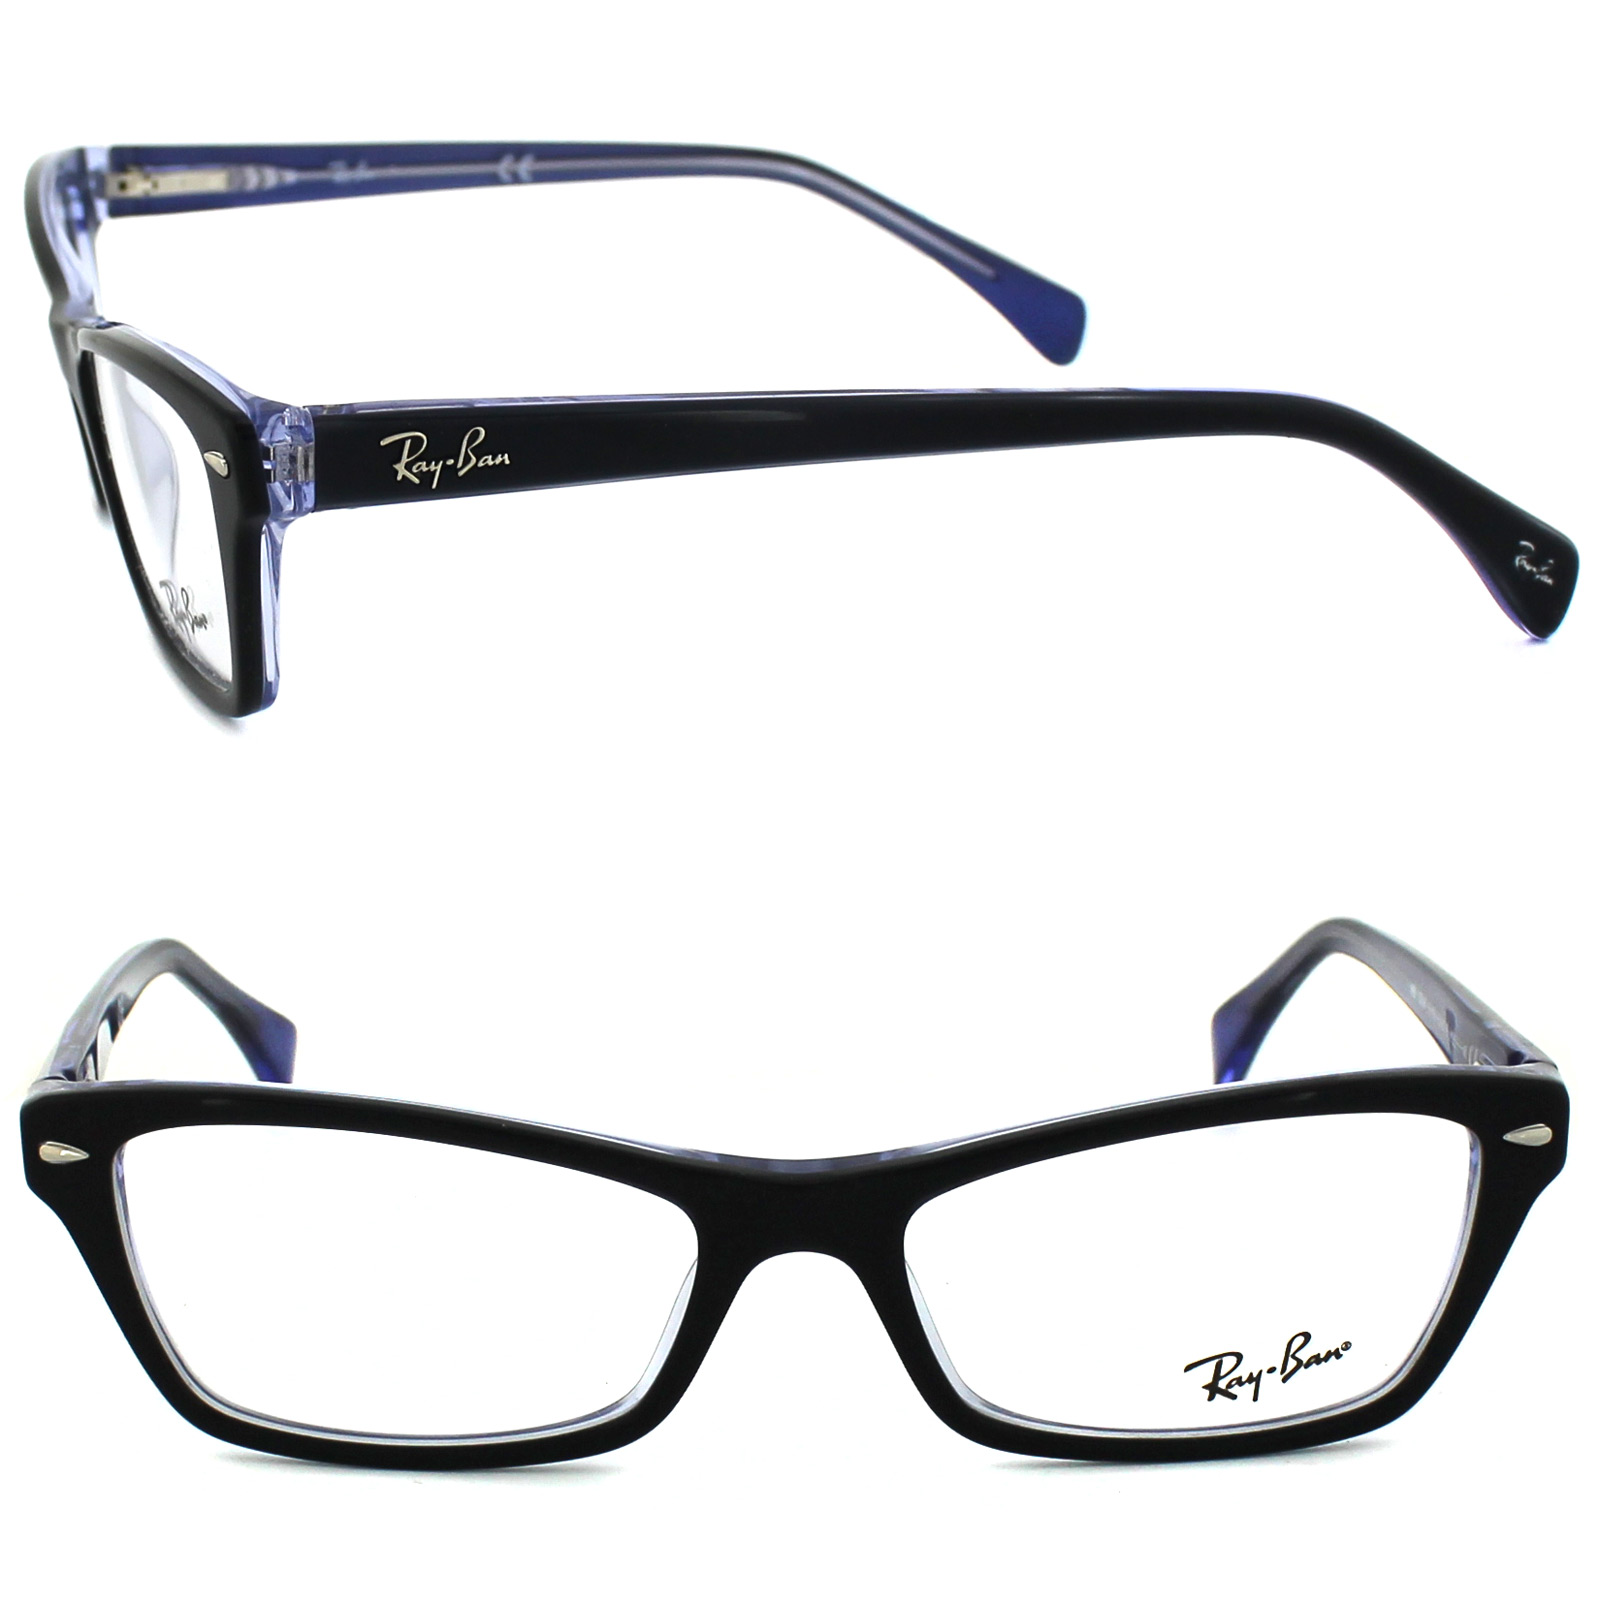 Eyeglass Frames Inexpensive : Cheap Ray Ban Eyeglass Frames